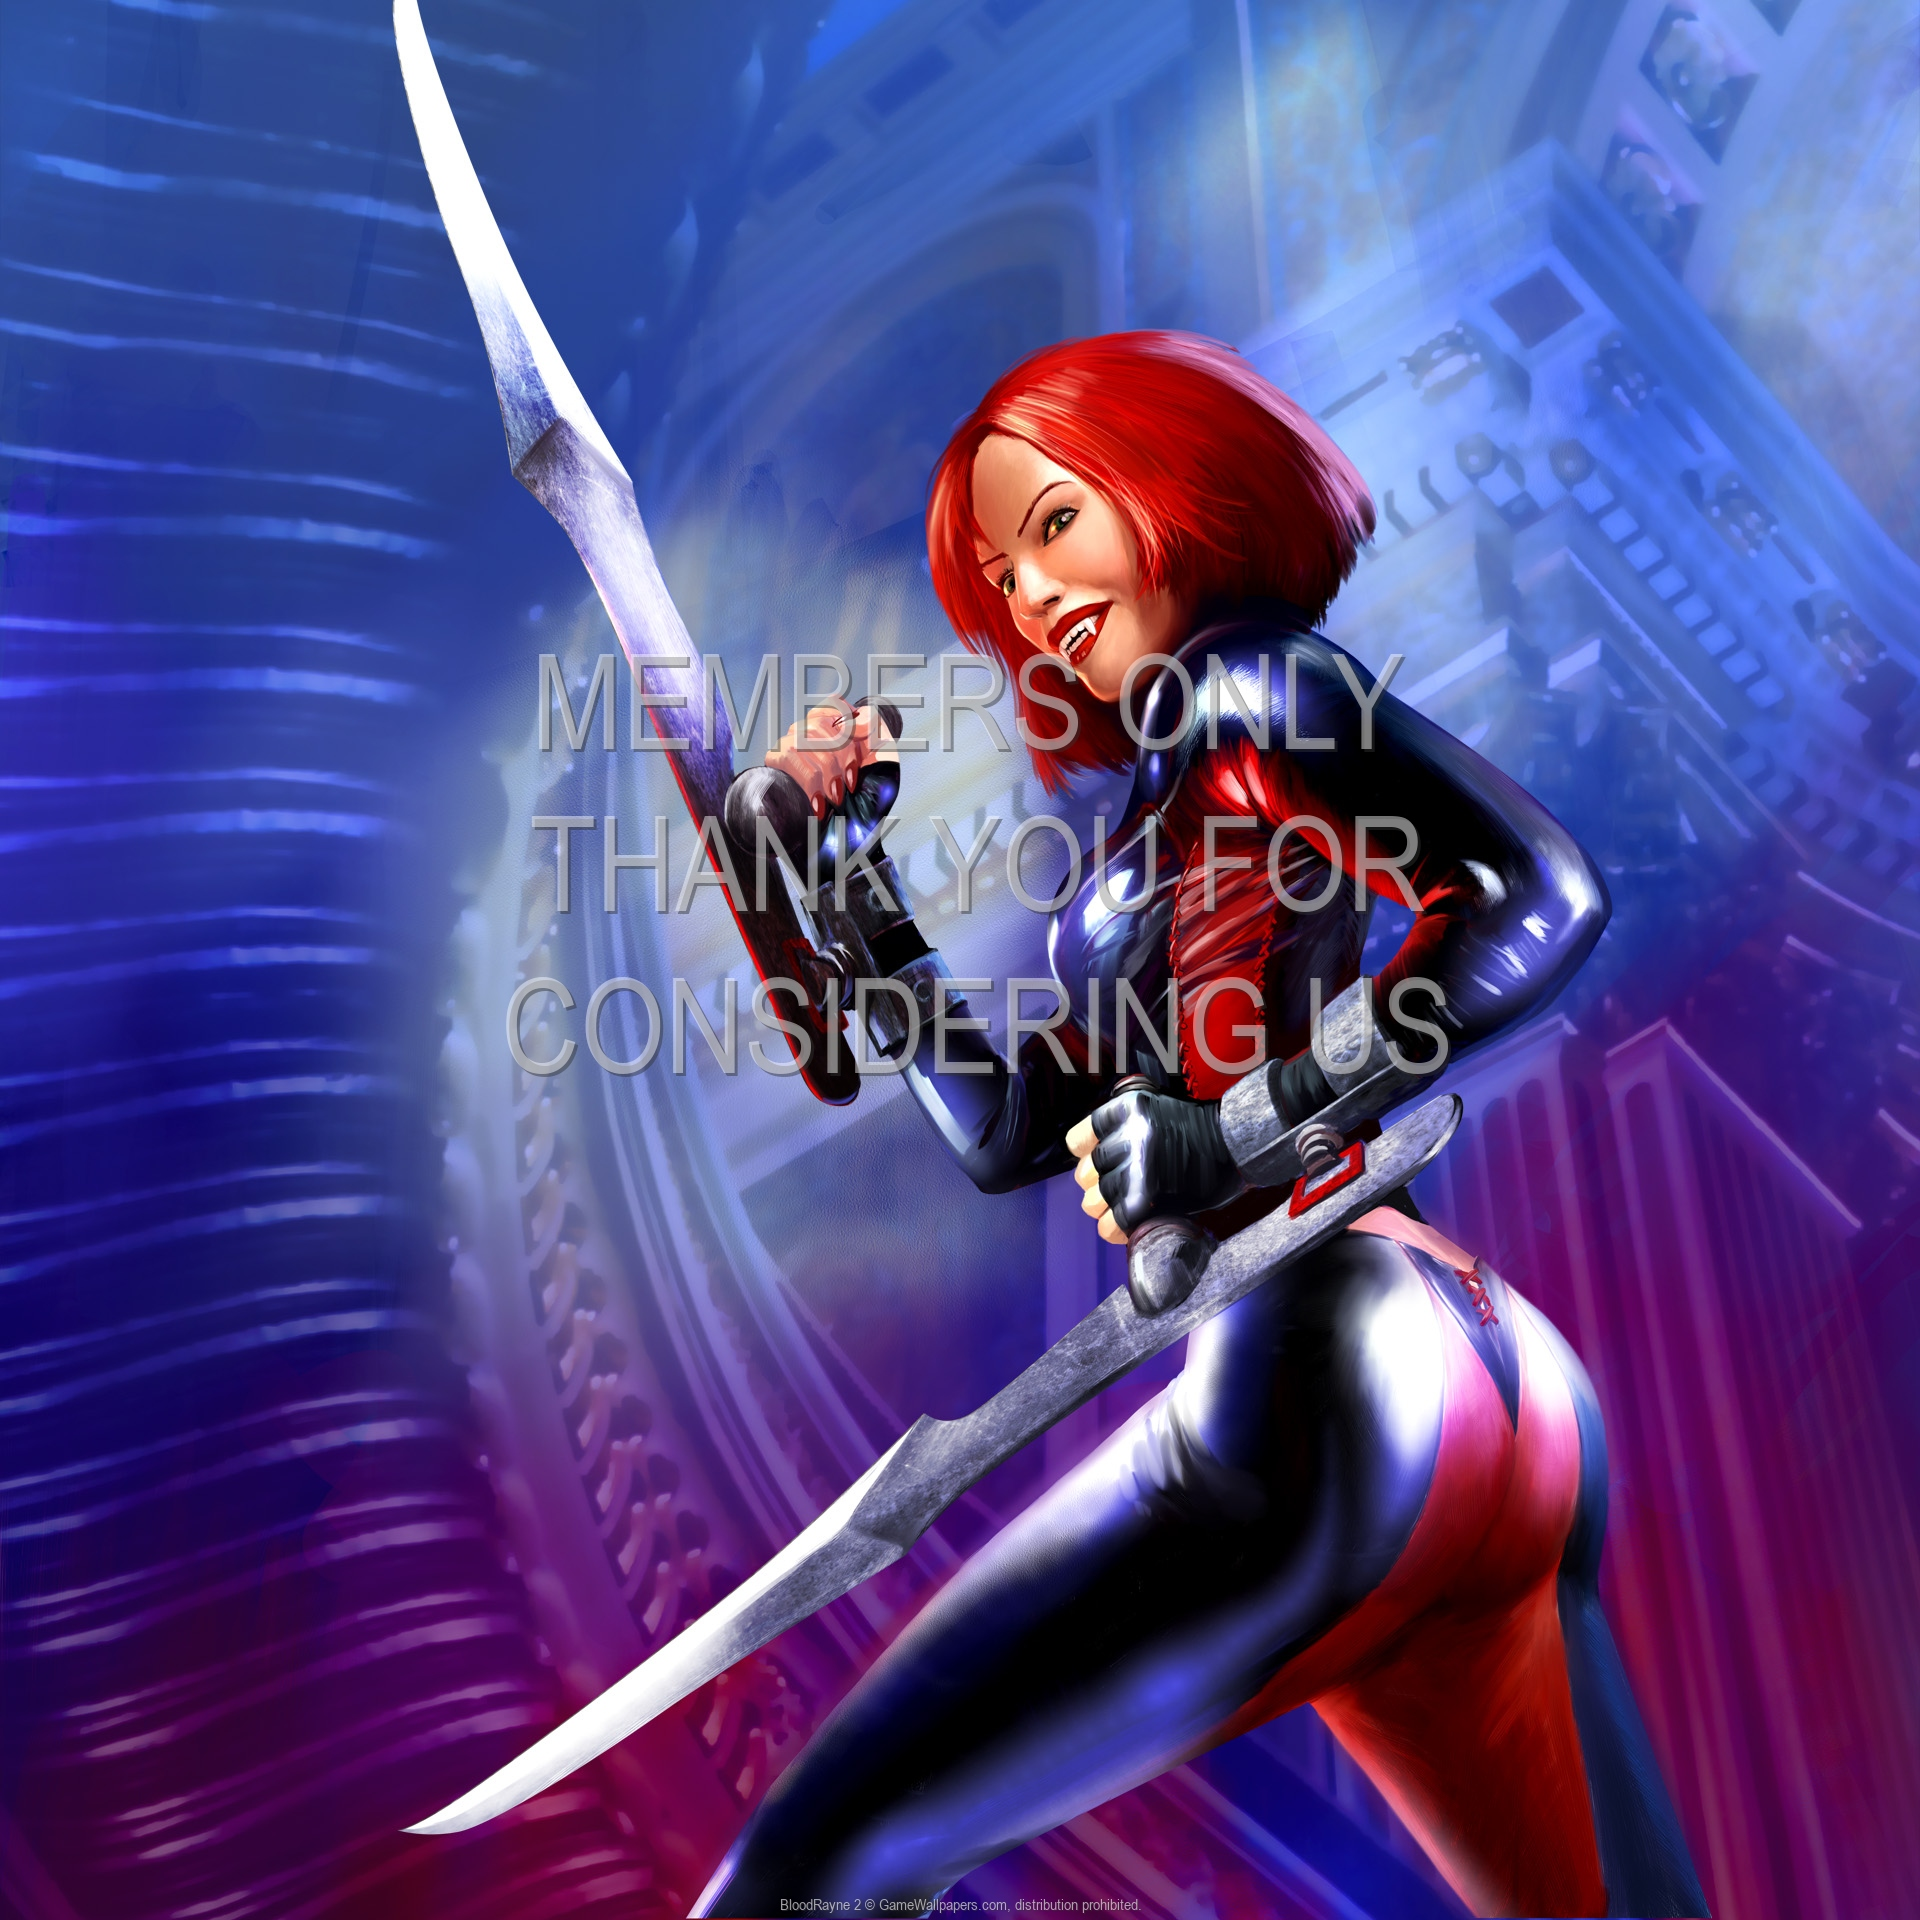 BloodRayne 2 1920x1080 Mobile wallpaper or background 08